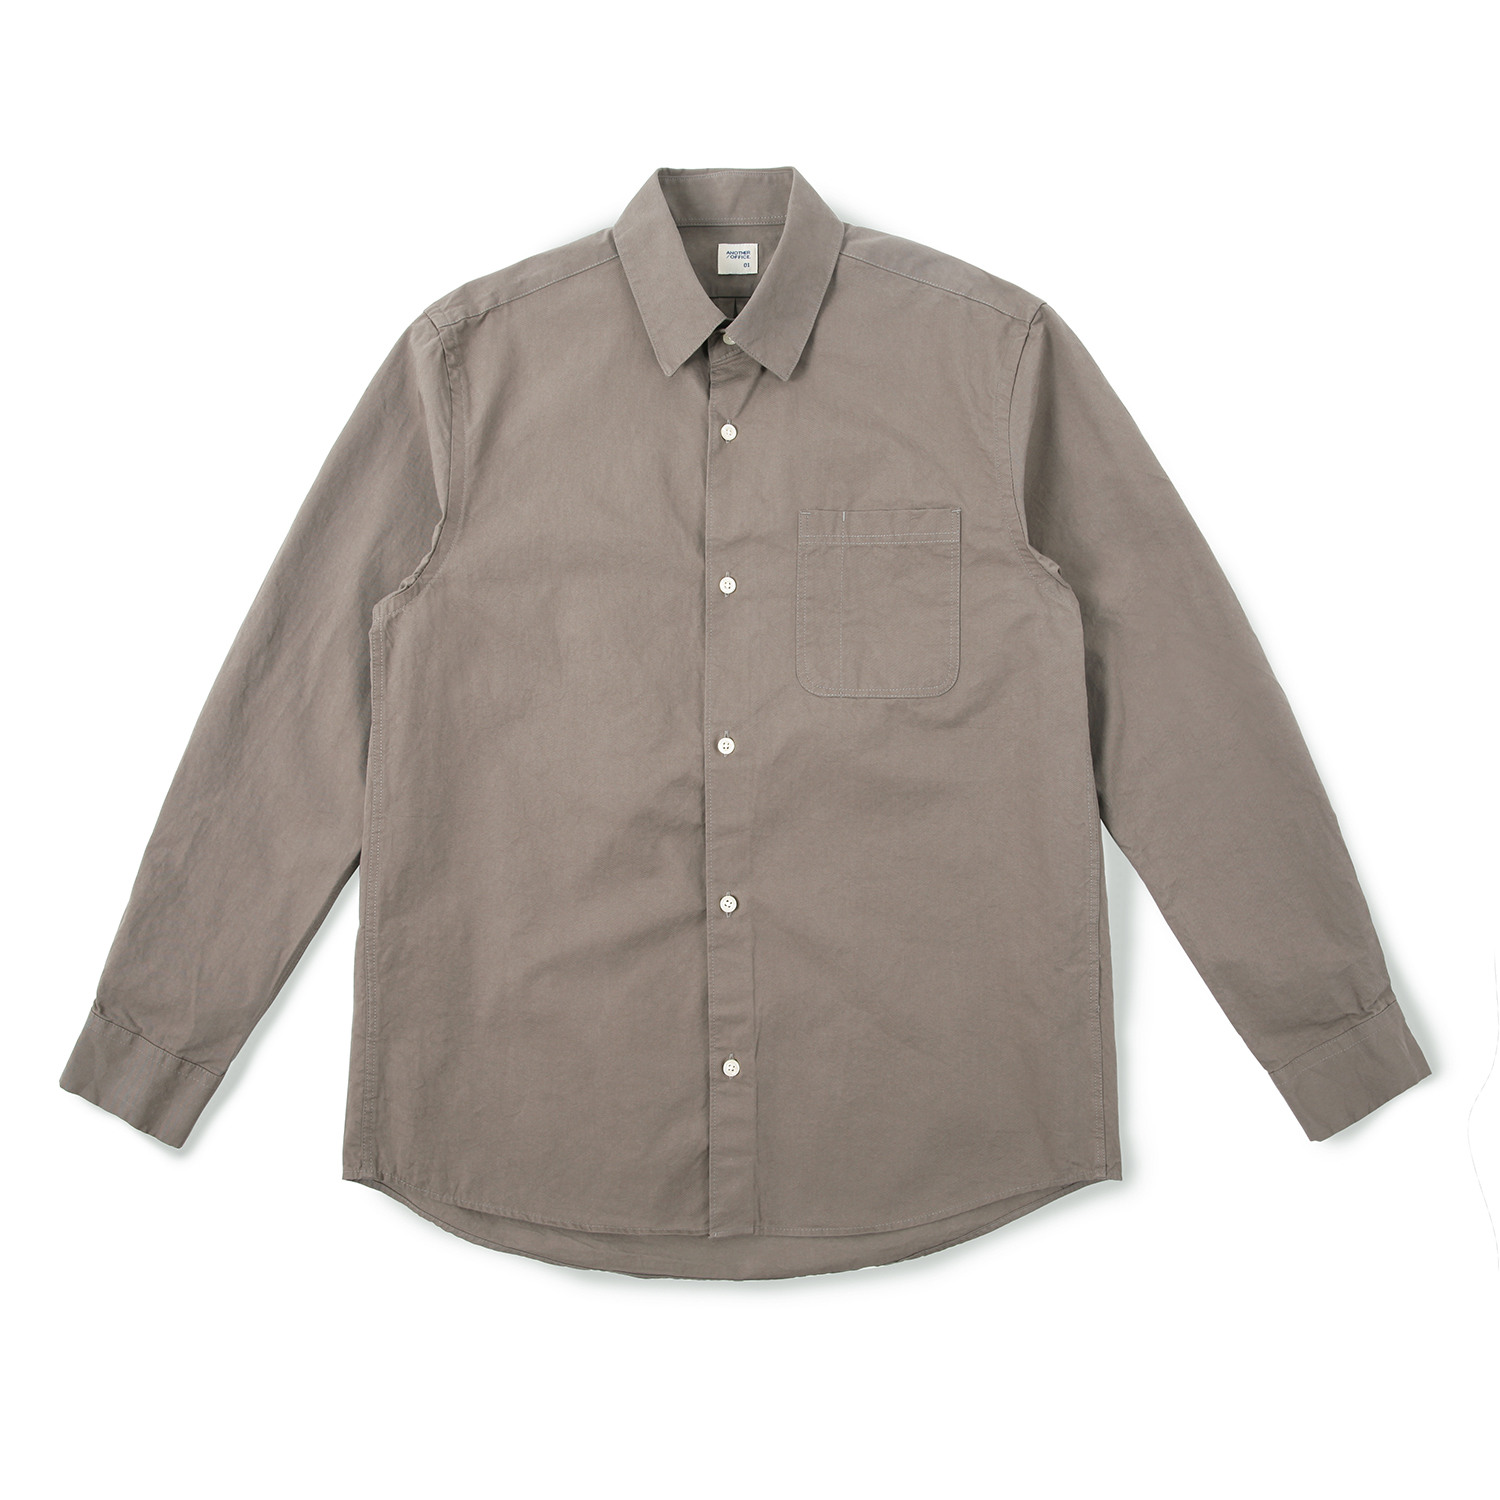 25% OFF_Daily Life Shirt (Brown)